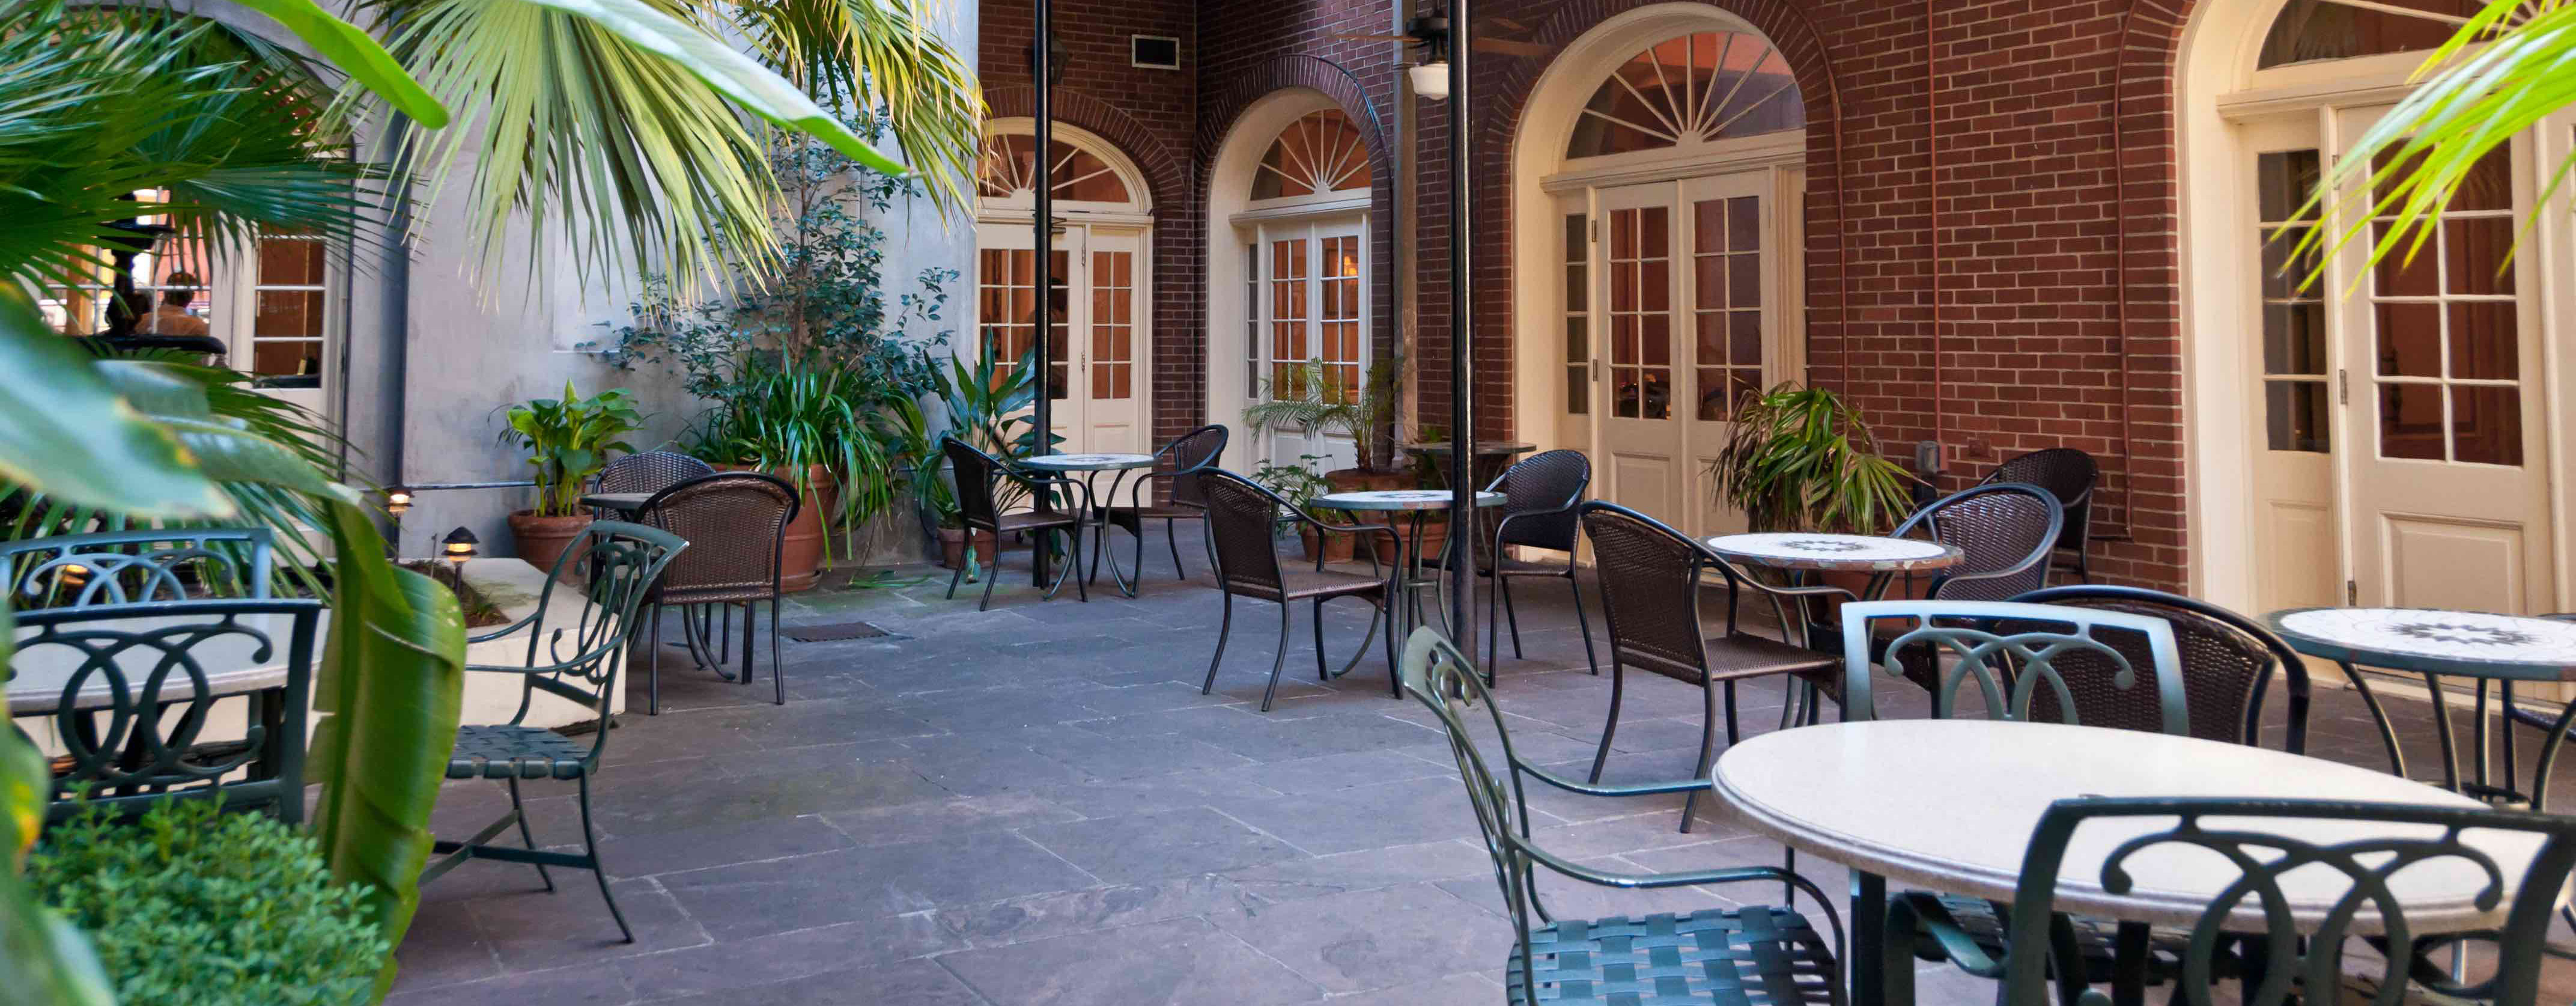 bourbon street hotels with balcony Hotel St Marie French Quarter New Orleans Hotel St Marie A